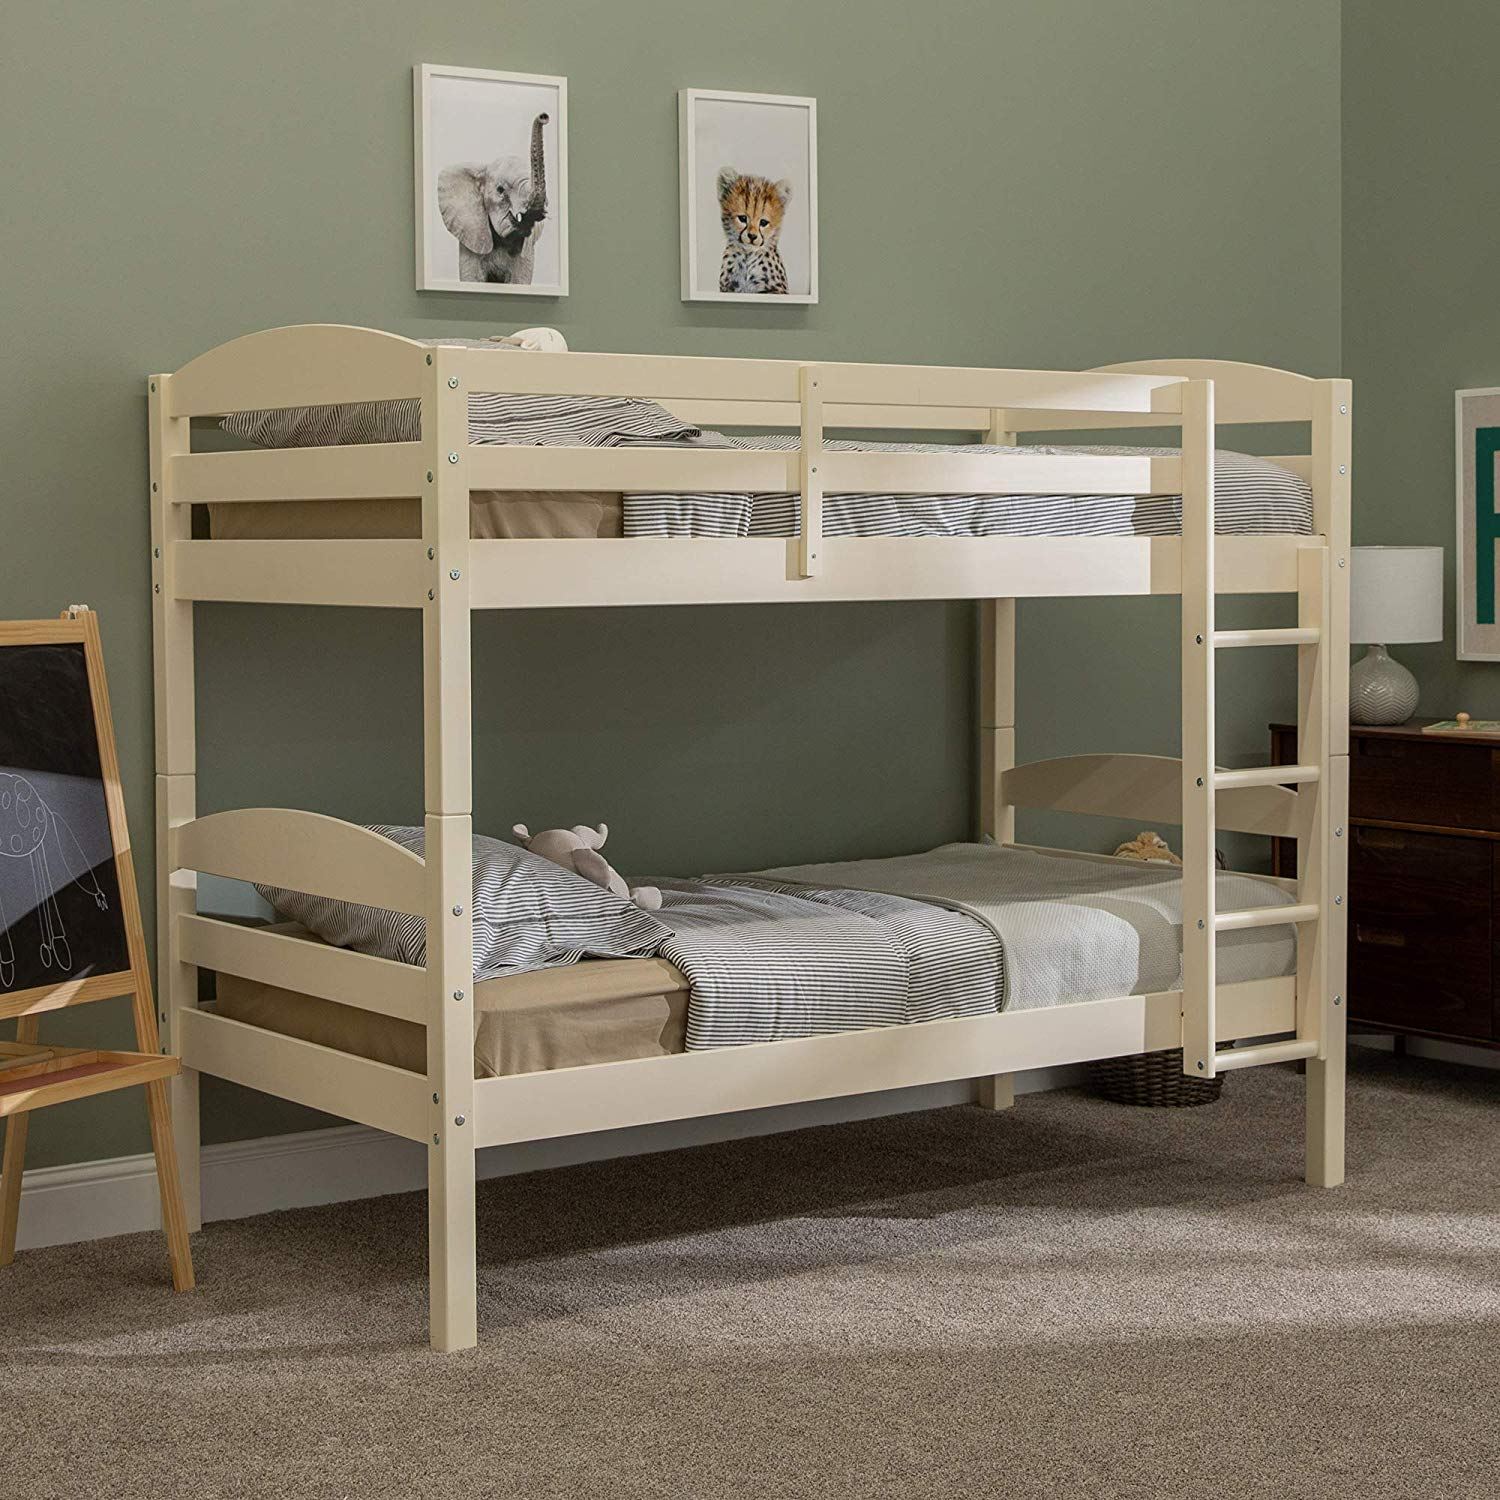 WE Furniture Wood Twin Bunk Kids Bed Bedroom with Guard Rail and Ladder Easy Assembly